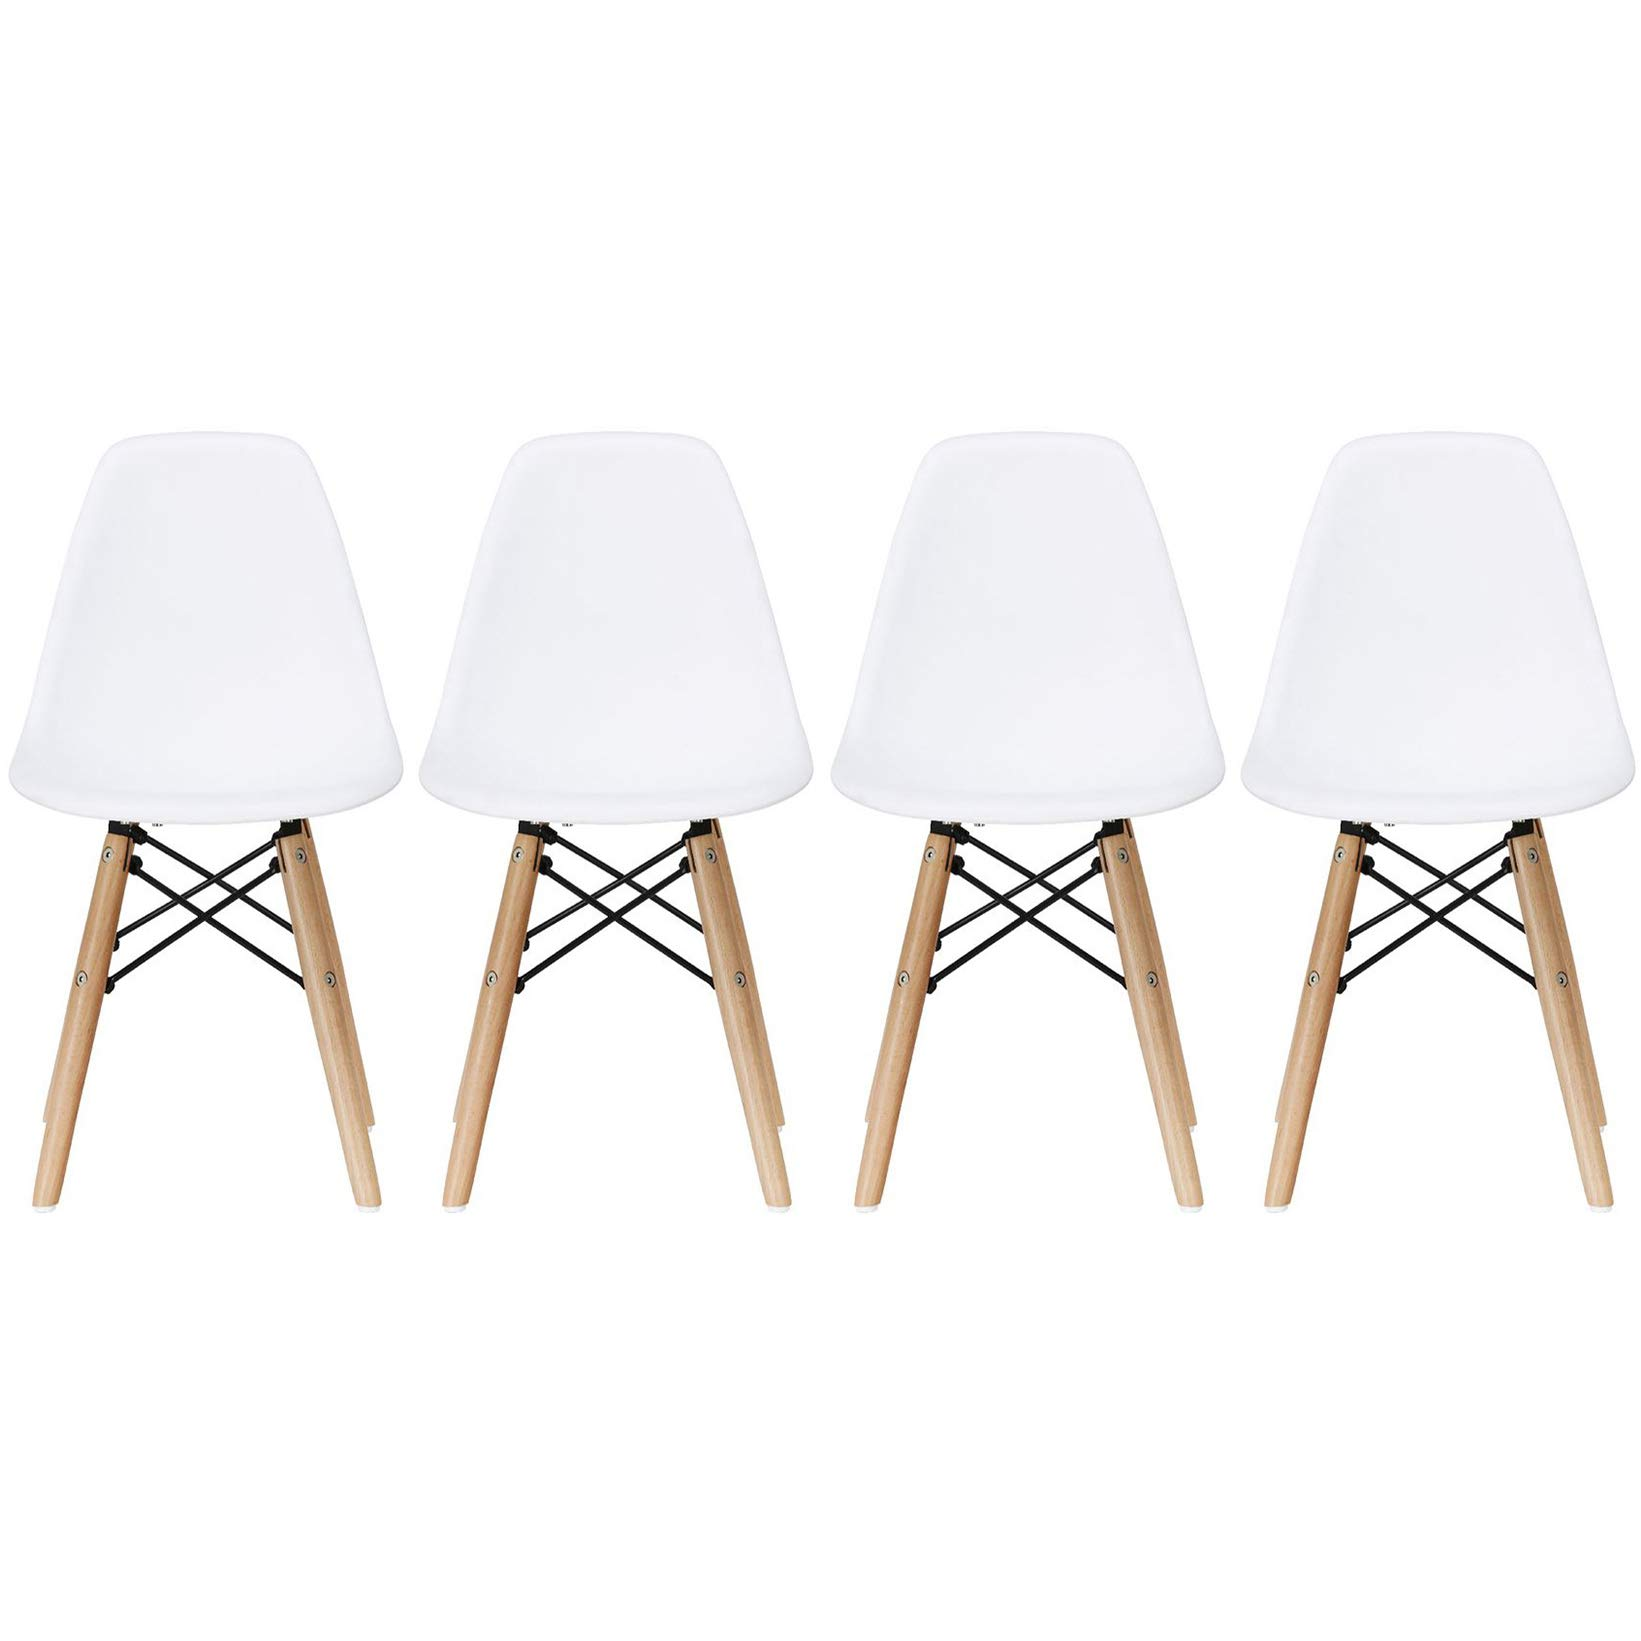 2xhome - Set of Four (4) - White - Kids Size Side Chairs White Seat Natural Wood Wooden Legs Eiffel Childrens Room Chairs No Arm Arms Armless Molded Plastic Seat Dowel Leg by 2xhome